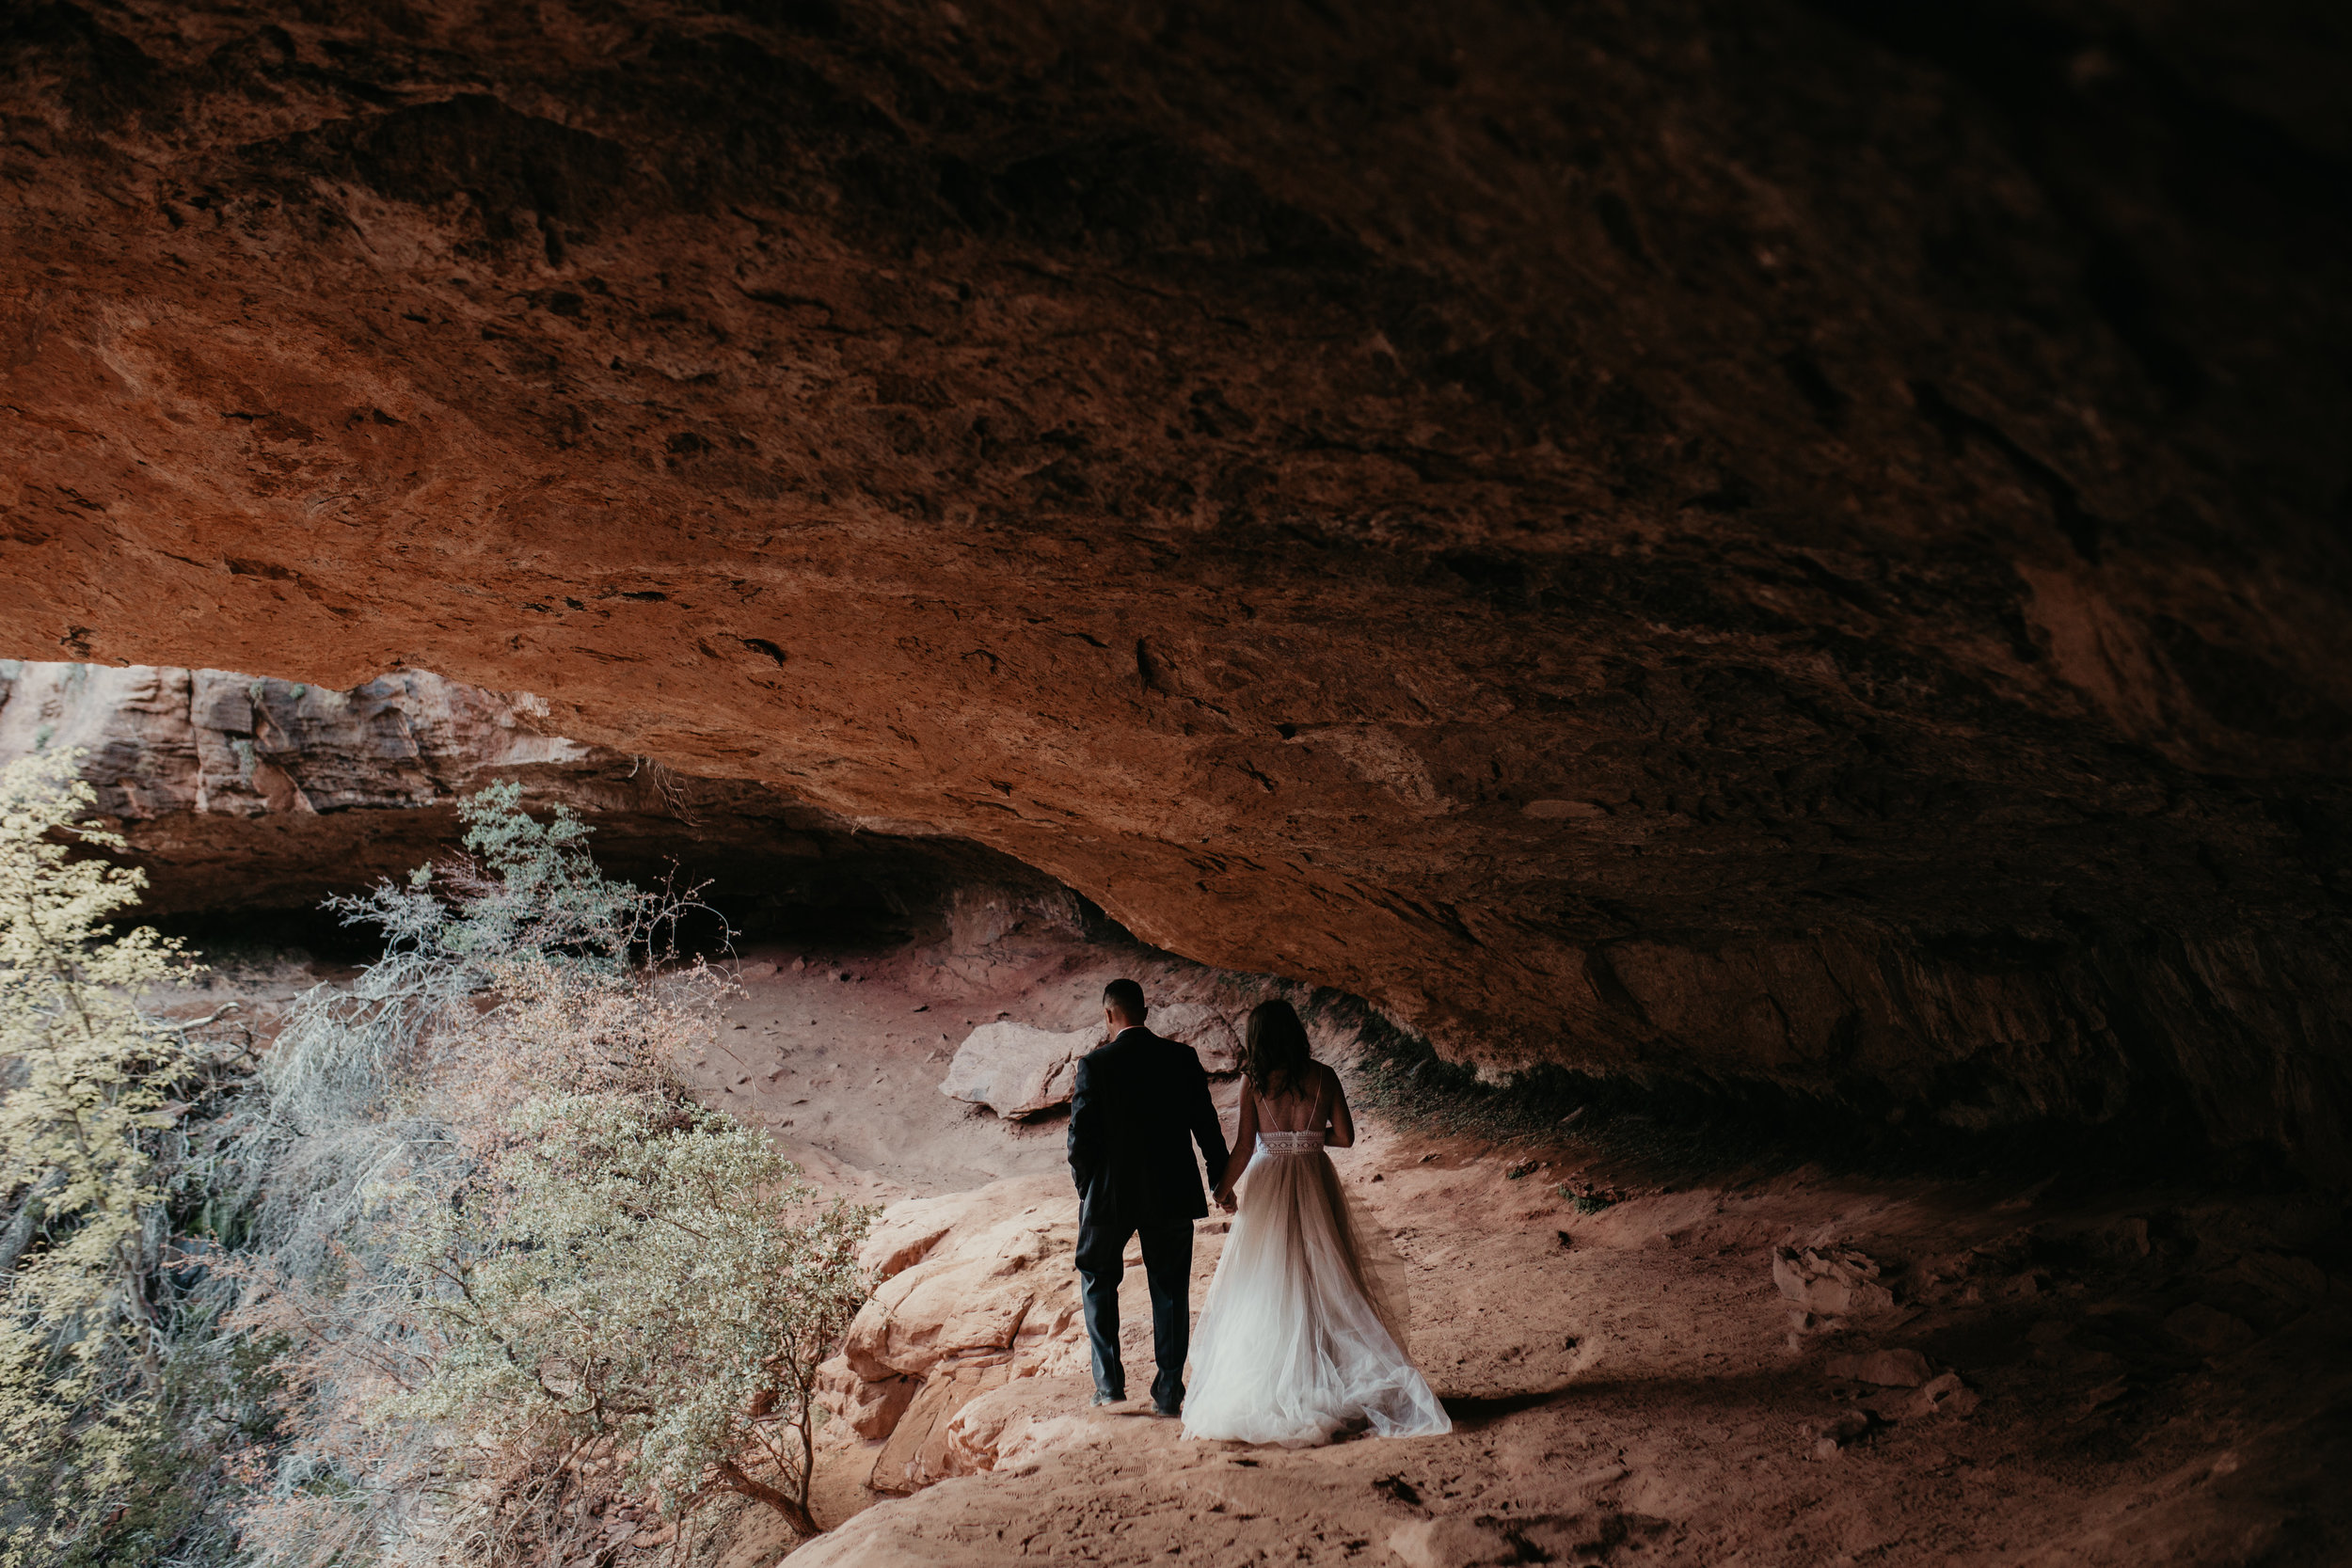 nicole-daacke-photography-zion-national-park-elopement-photographer-canyon-overlook-trail-elope-hiking-adventure-wedding-photos-fall-utah-red-rock-canyon-stgeorge-eloping-photographer-34.jpg